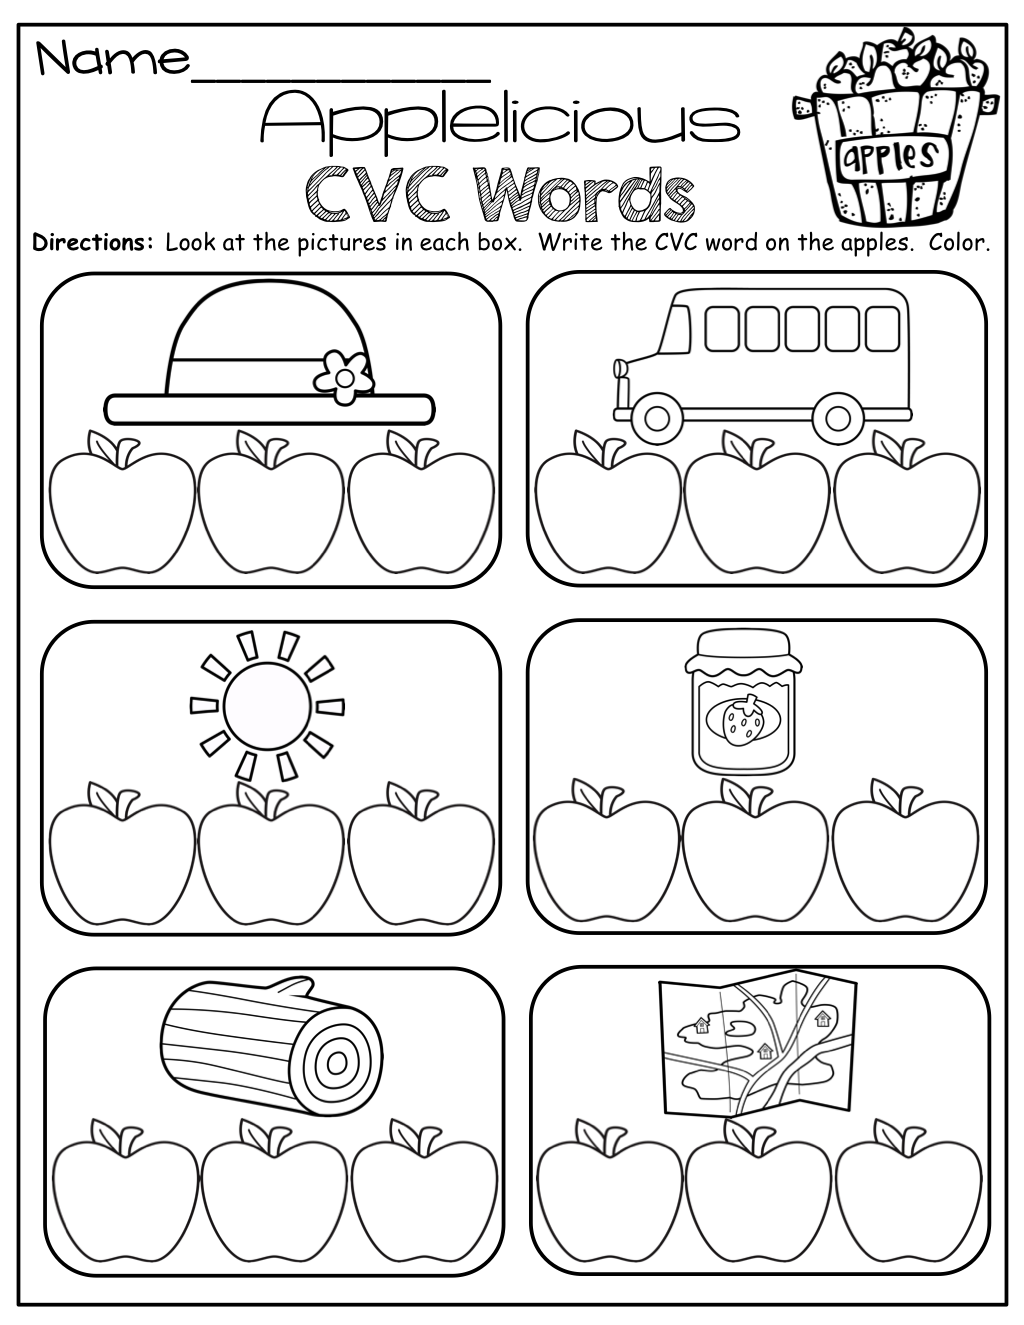 CVC Words! Write the letter to match the picture for each CVC word ...